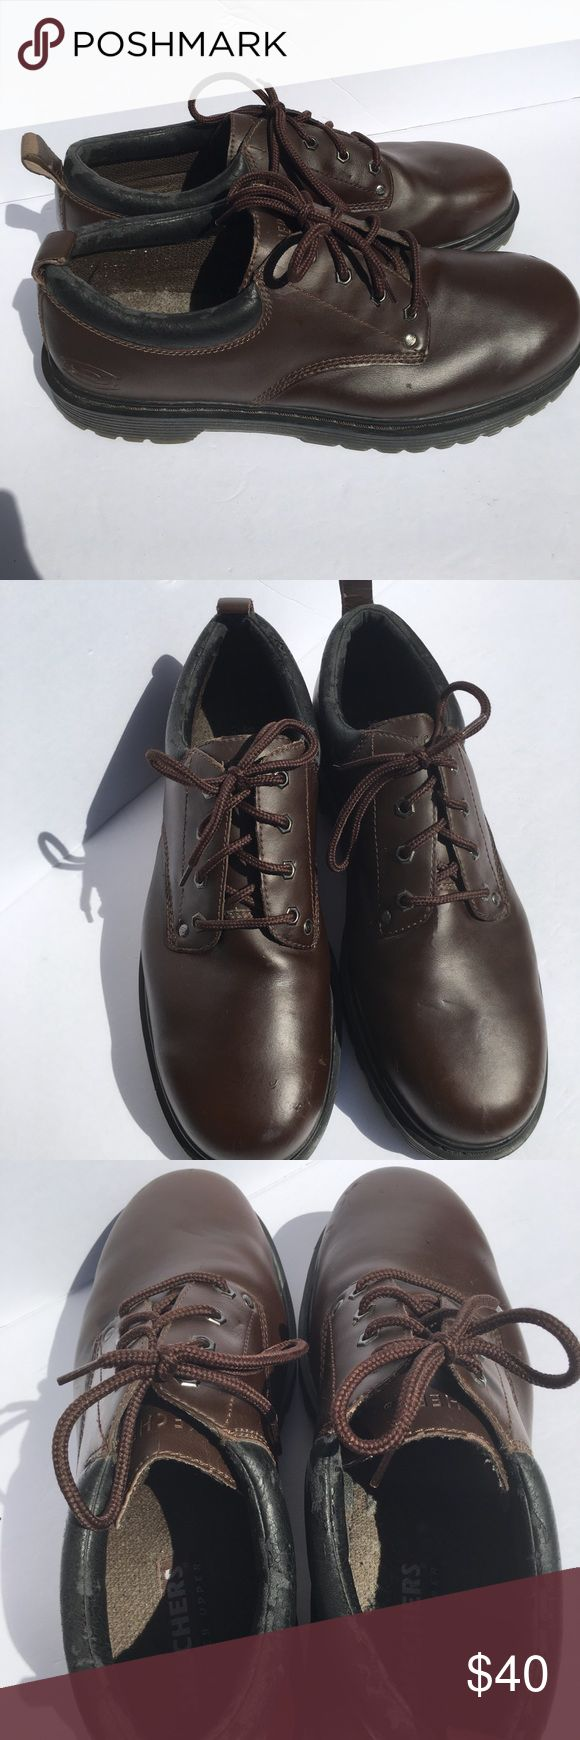 Skechers Mens Shoes Size 14 Brown Oxford Lace Up This listing is for a pair of men's brown lace up Skechers oxfords in a size 14. Very minor scuff marks on the toe box and some of the black lining around upper part of shoe has worn away. Please see photos. Skechers Shoes Oxfords & Derbys